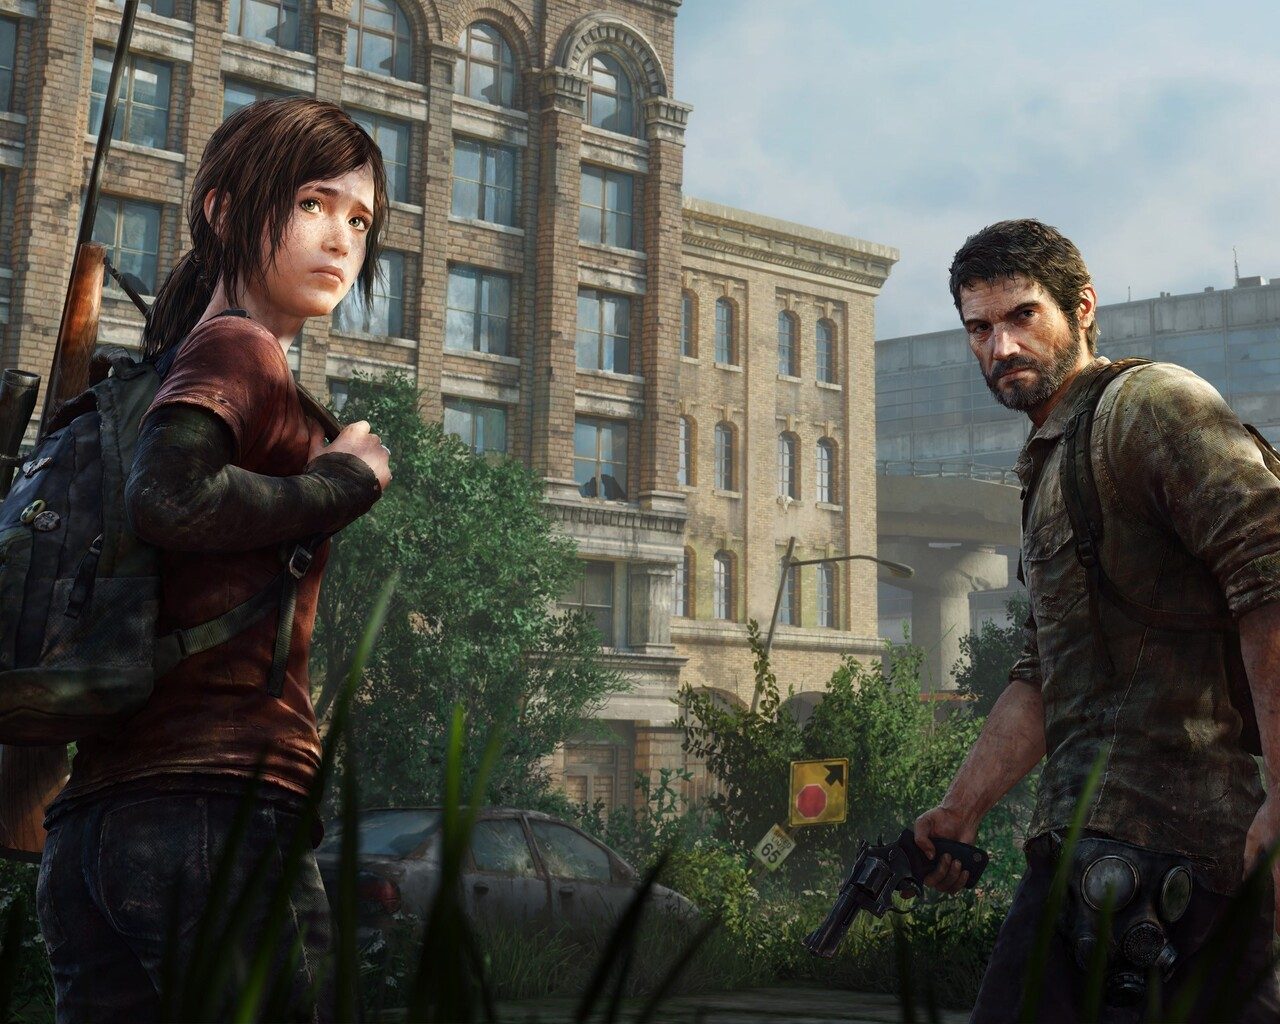 1280x1024 The Last Of Us Game 5k 1280x1024 Resolution Hd 4k